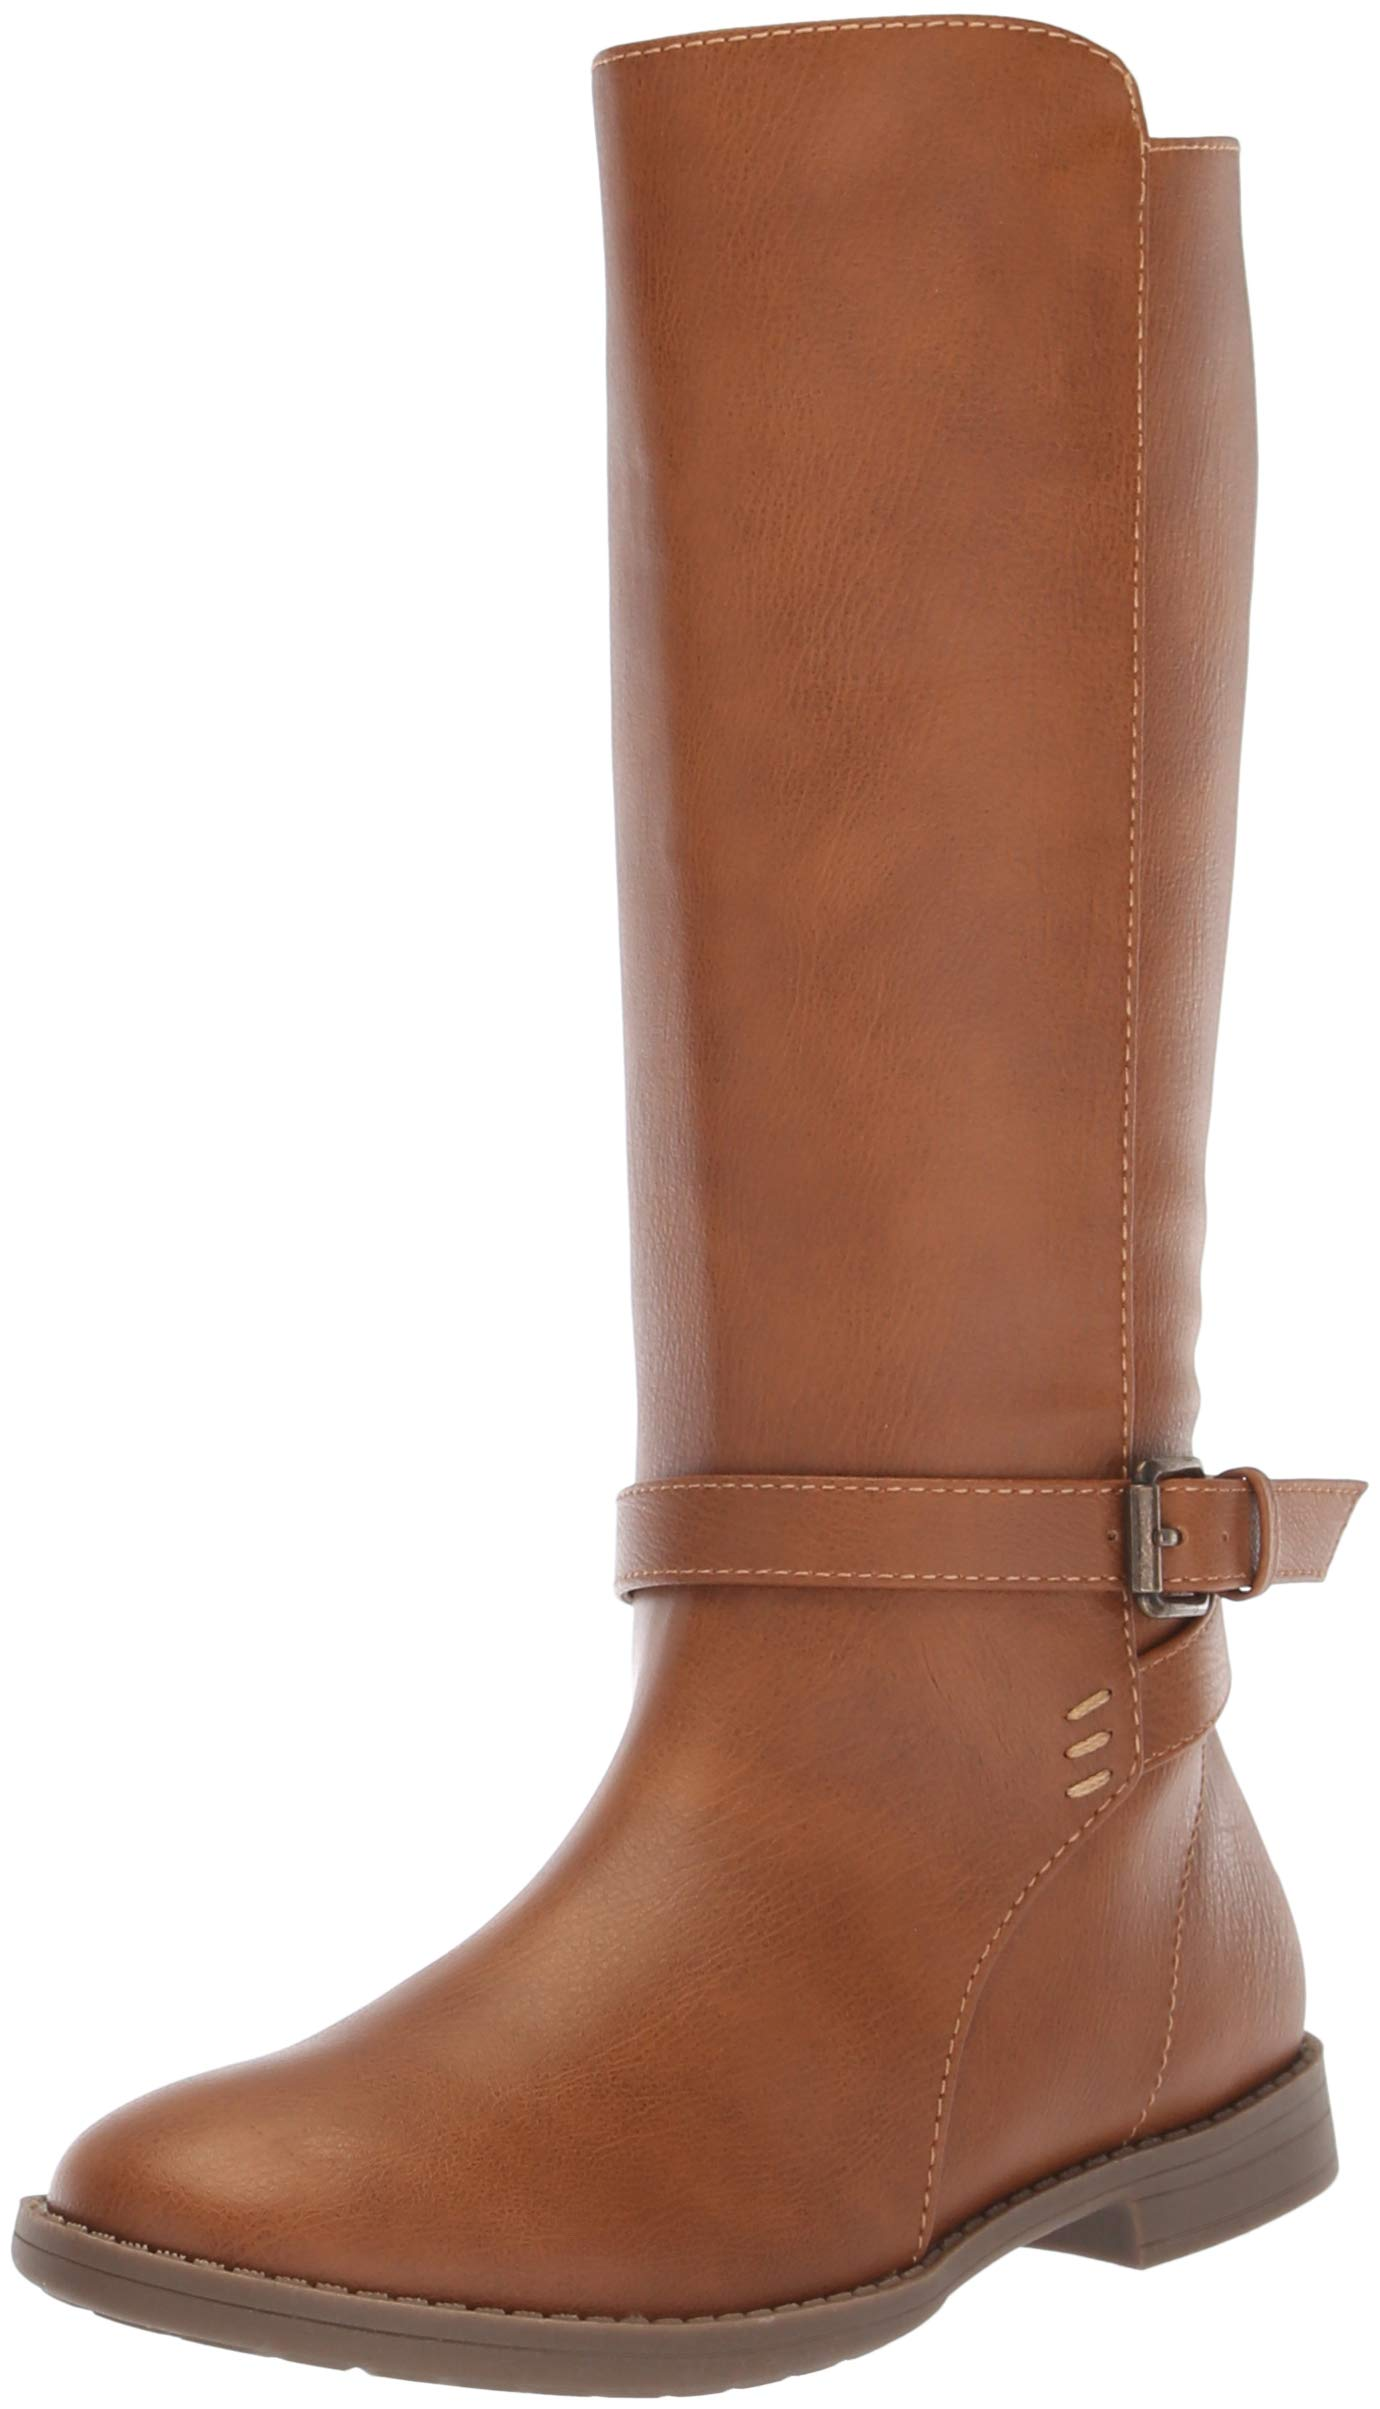 The Children's Place Girls' Tall Fashion Boot, Tan, Youth 12 Child US Little Kid